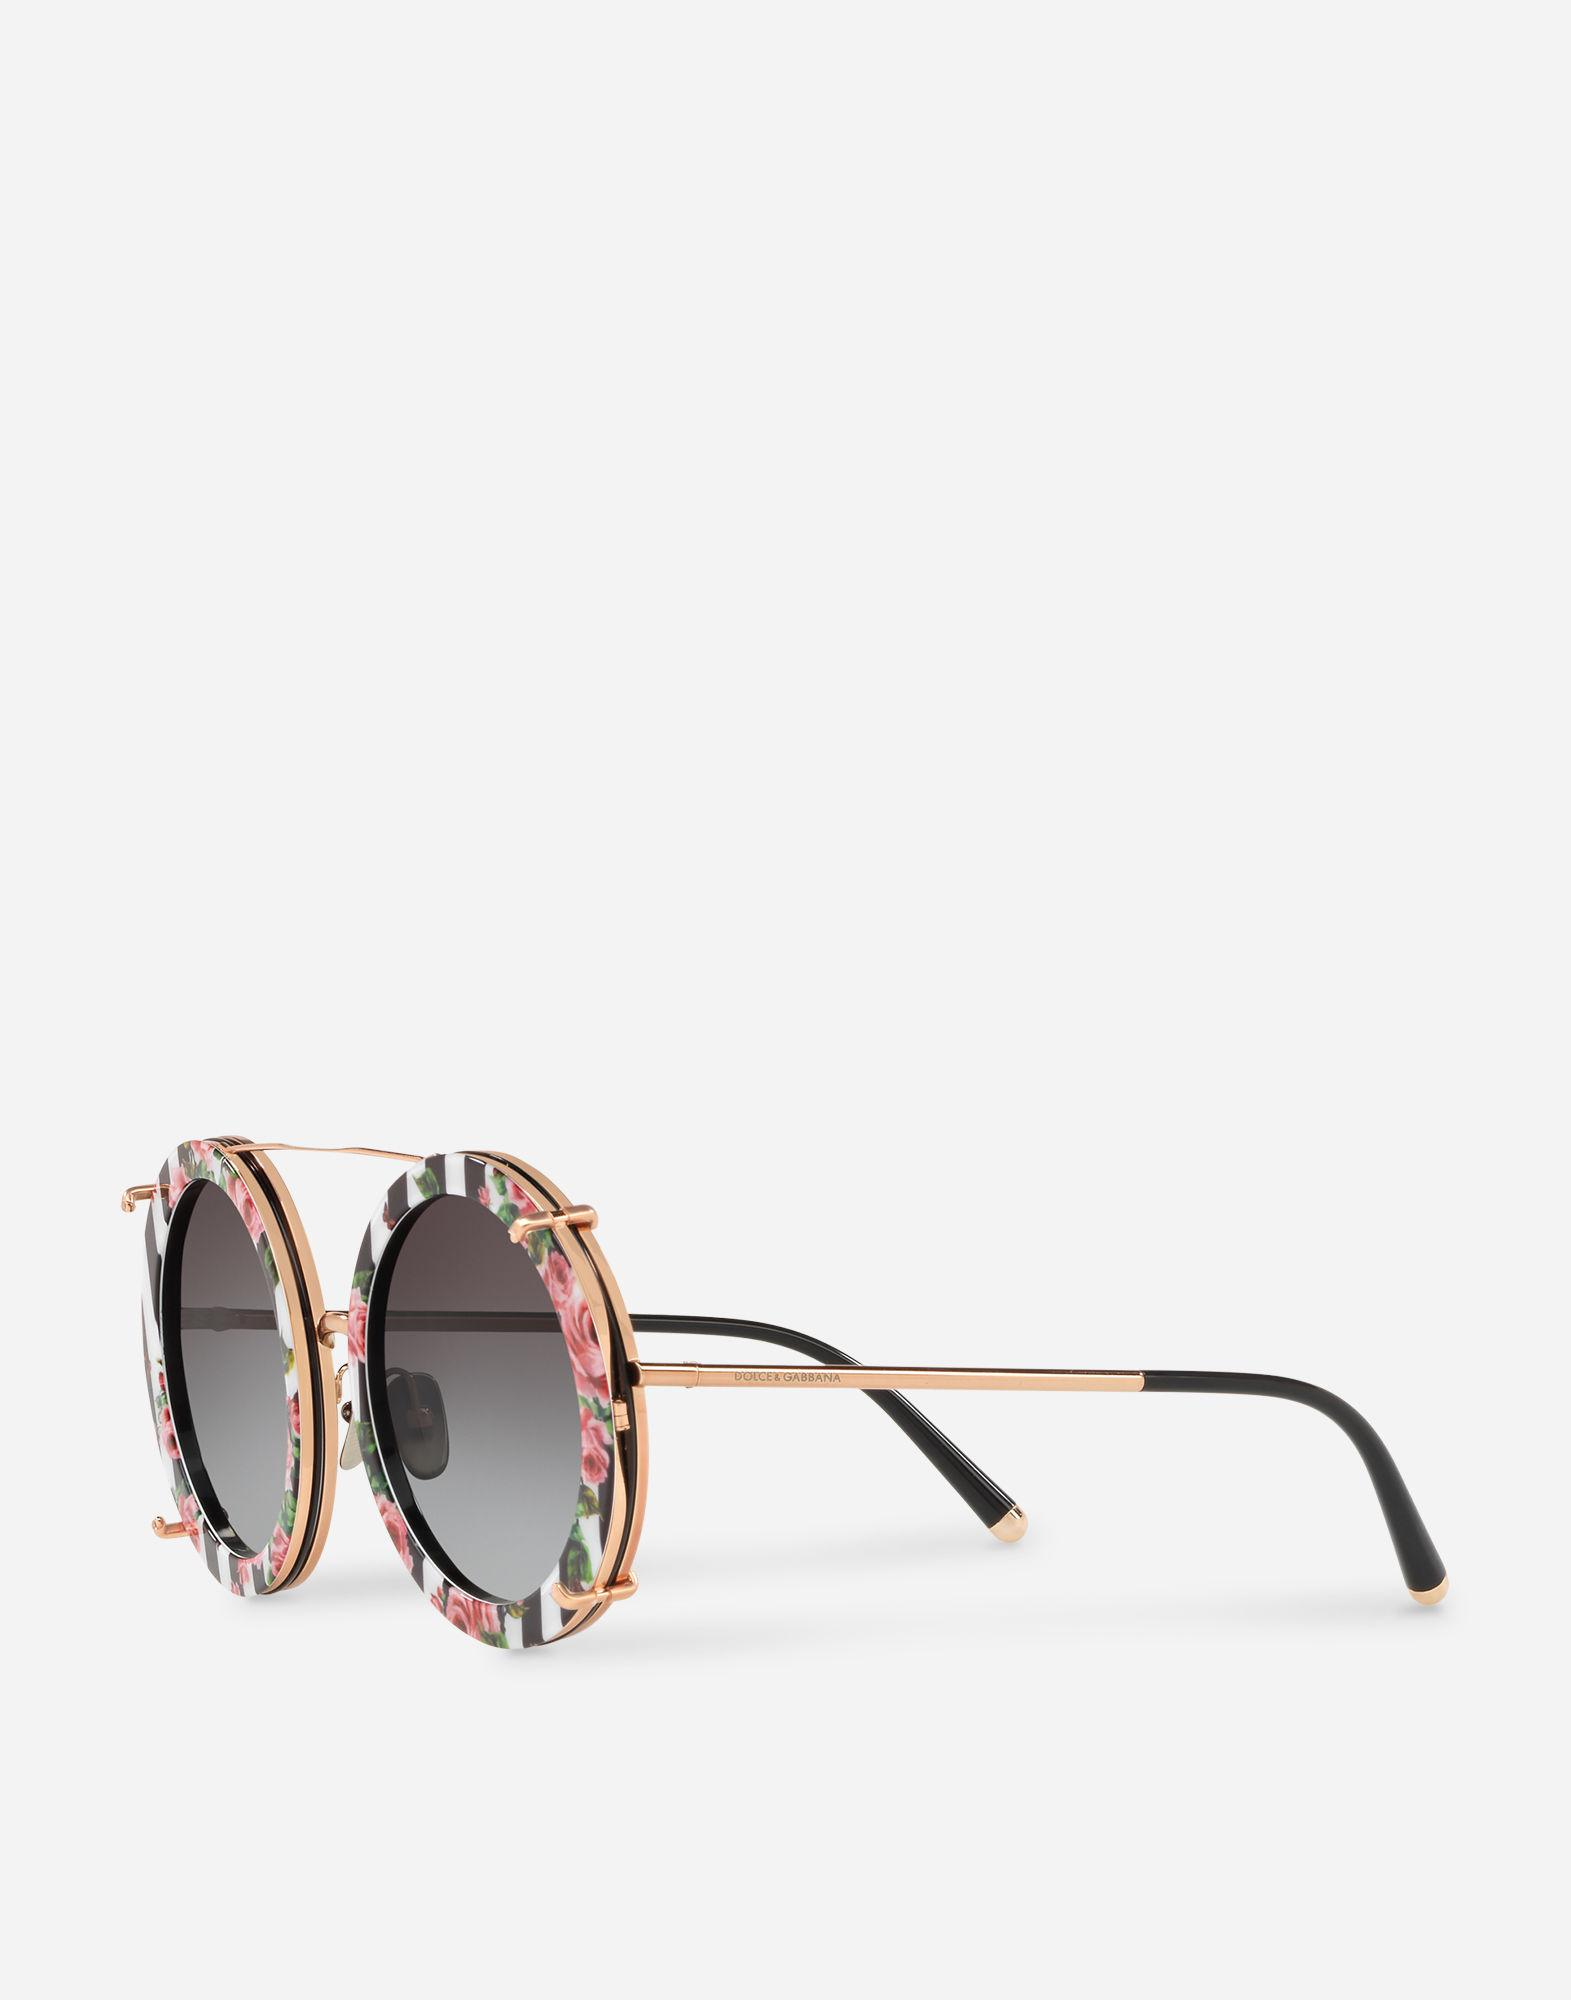 e34a2d894e5 Dolce   Gabbana - Metallic Round Clip-on Sunglasses In Gold Metal With  Stripe And. View fullscreen